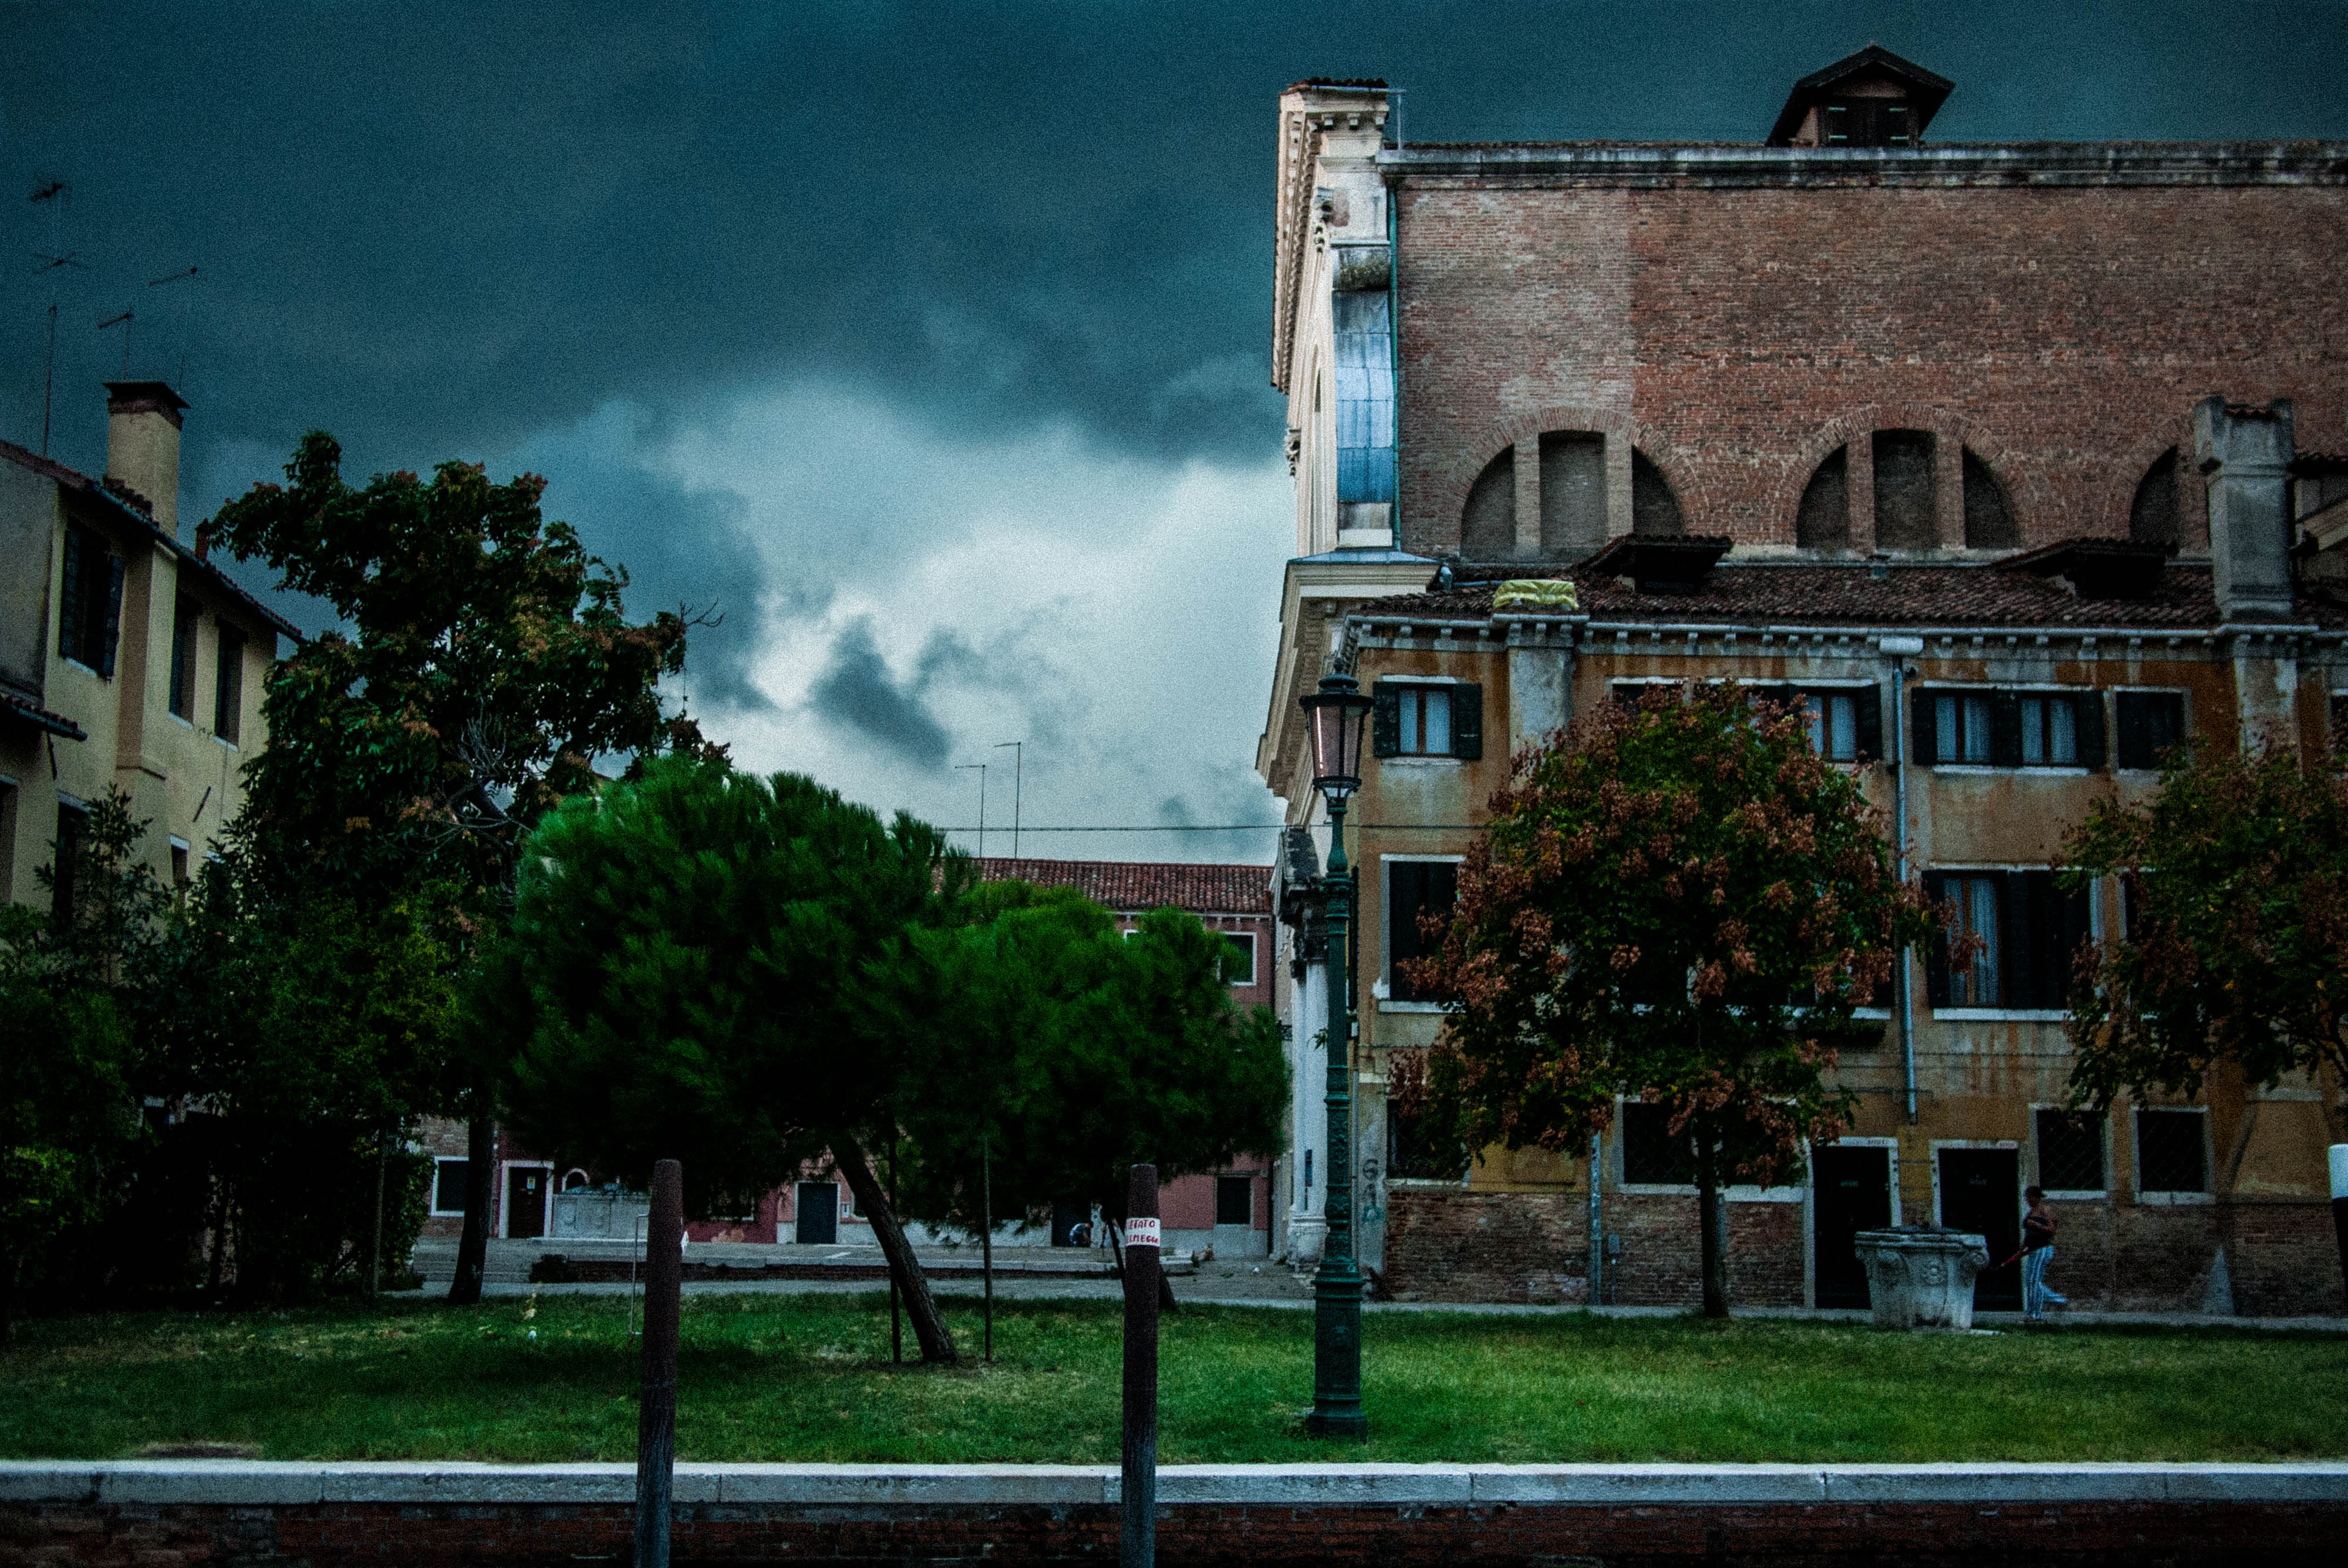 Storm in Venise #2